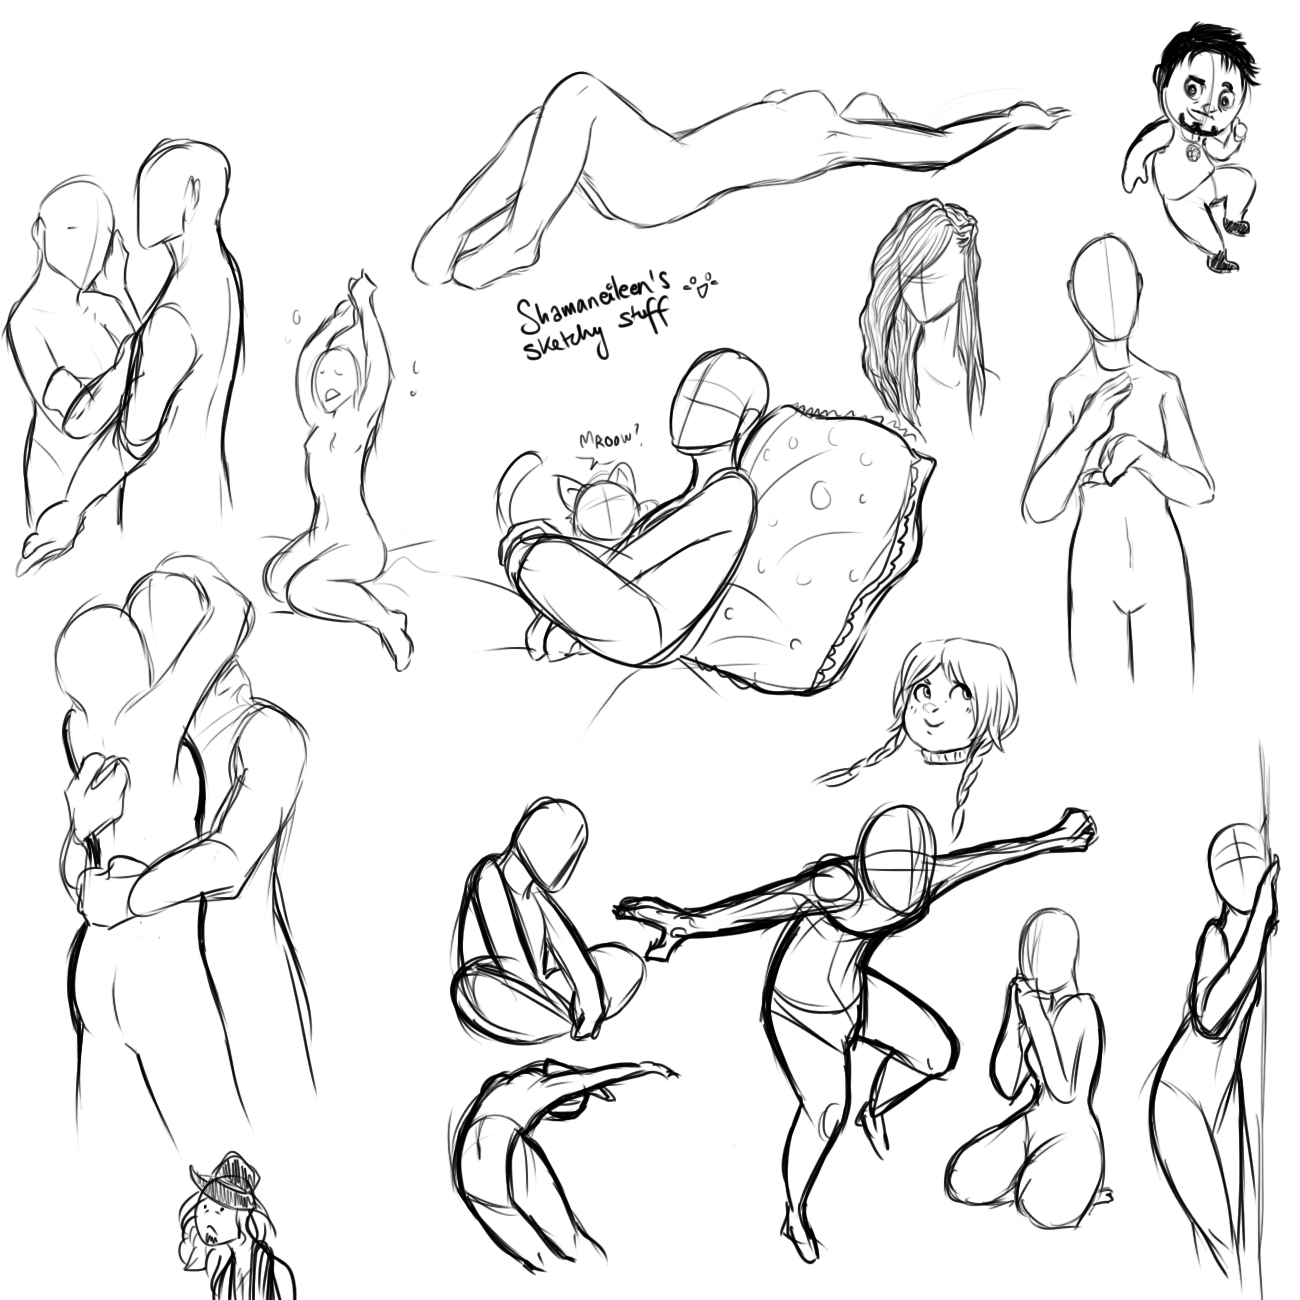 1300x1300 Poses And Thingies And Crap By Shamsarts